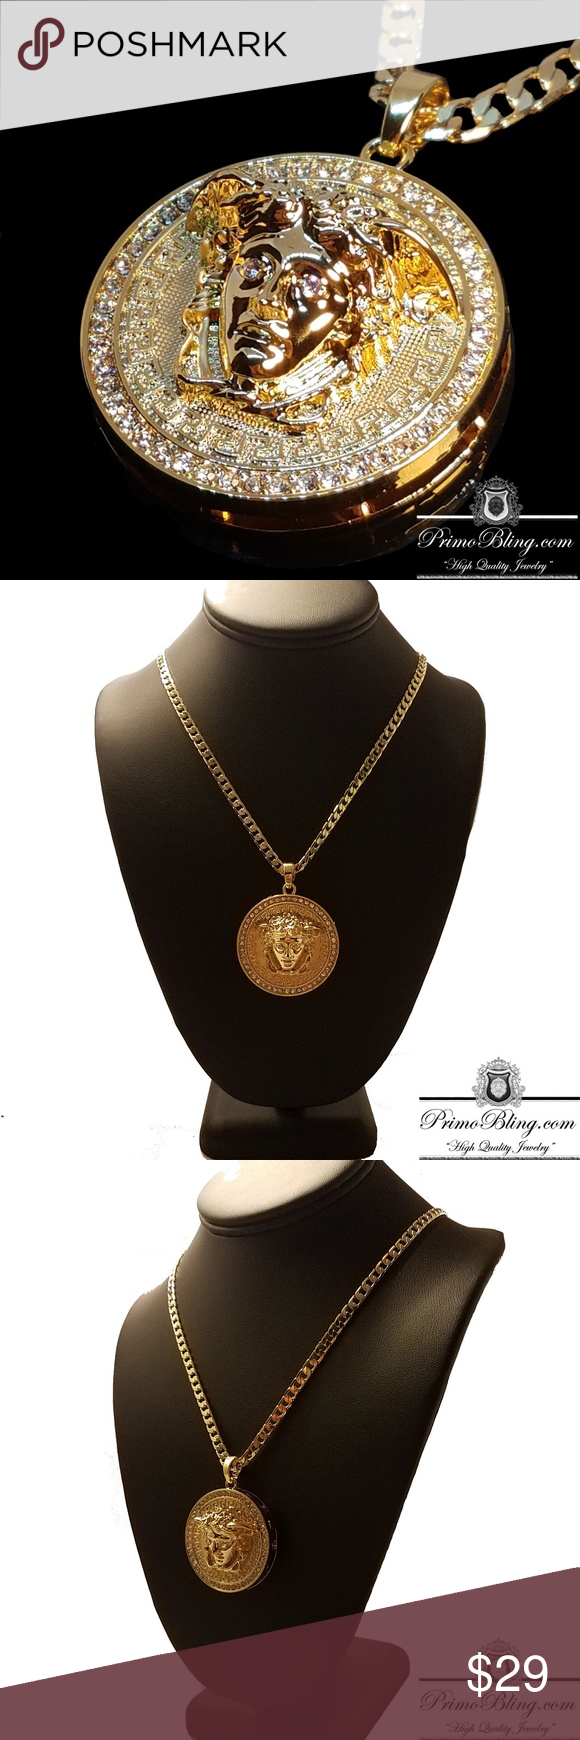 delicate plated bree necklaces garmentory nicaea sale necklace card pamela shop gold rebecca medallion